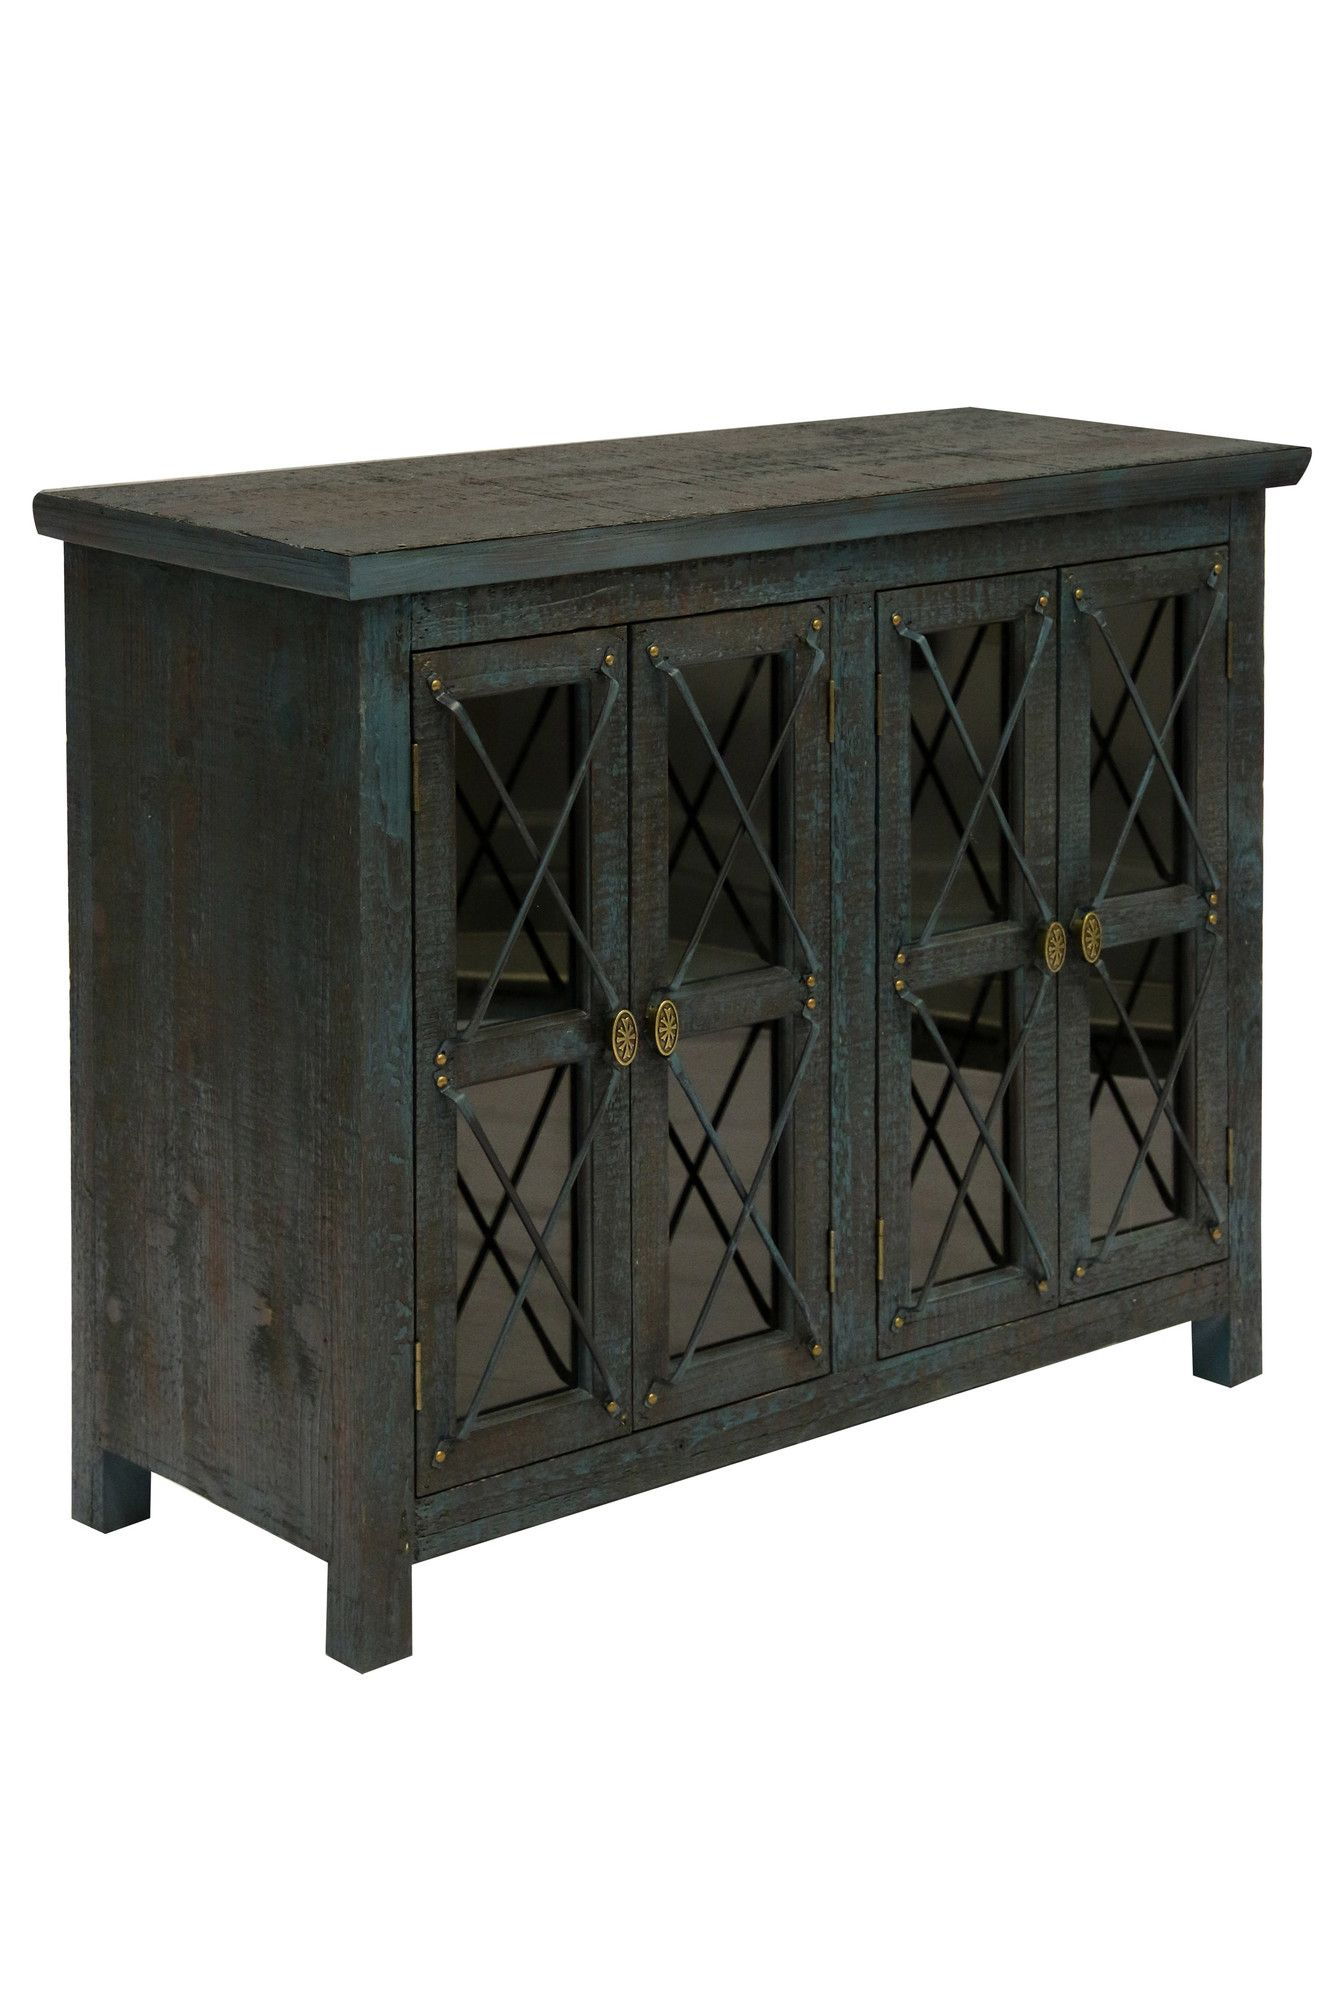 vozelle door cabinet products furniture doors and accent tables cabinets portable sun umbrella trunk beverage cooler side table threshold windham pottery barn square coffee brown